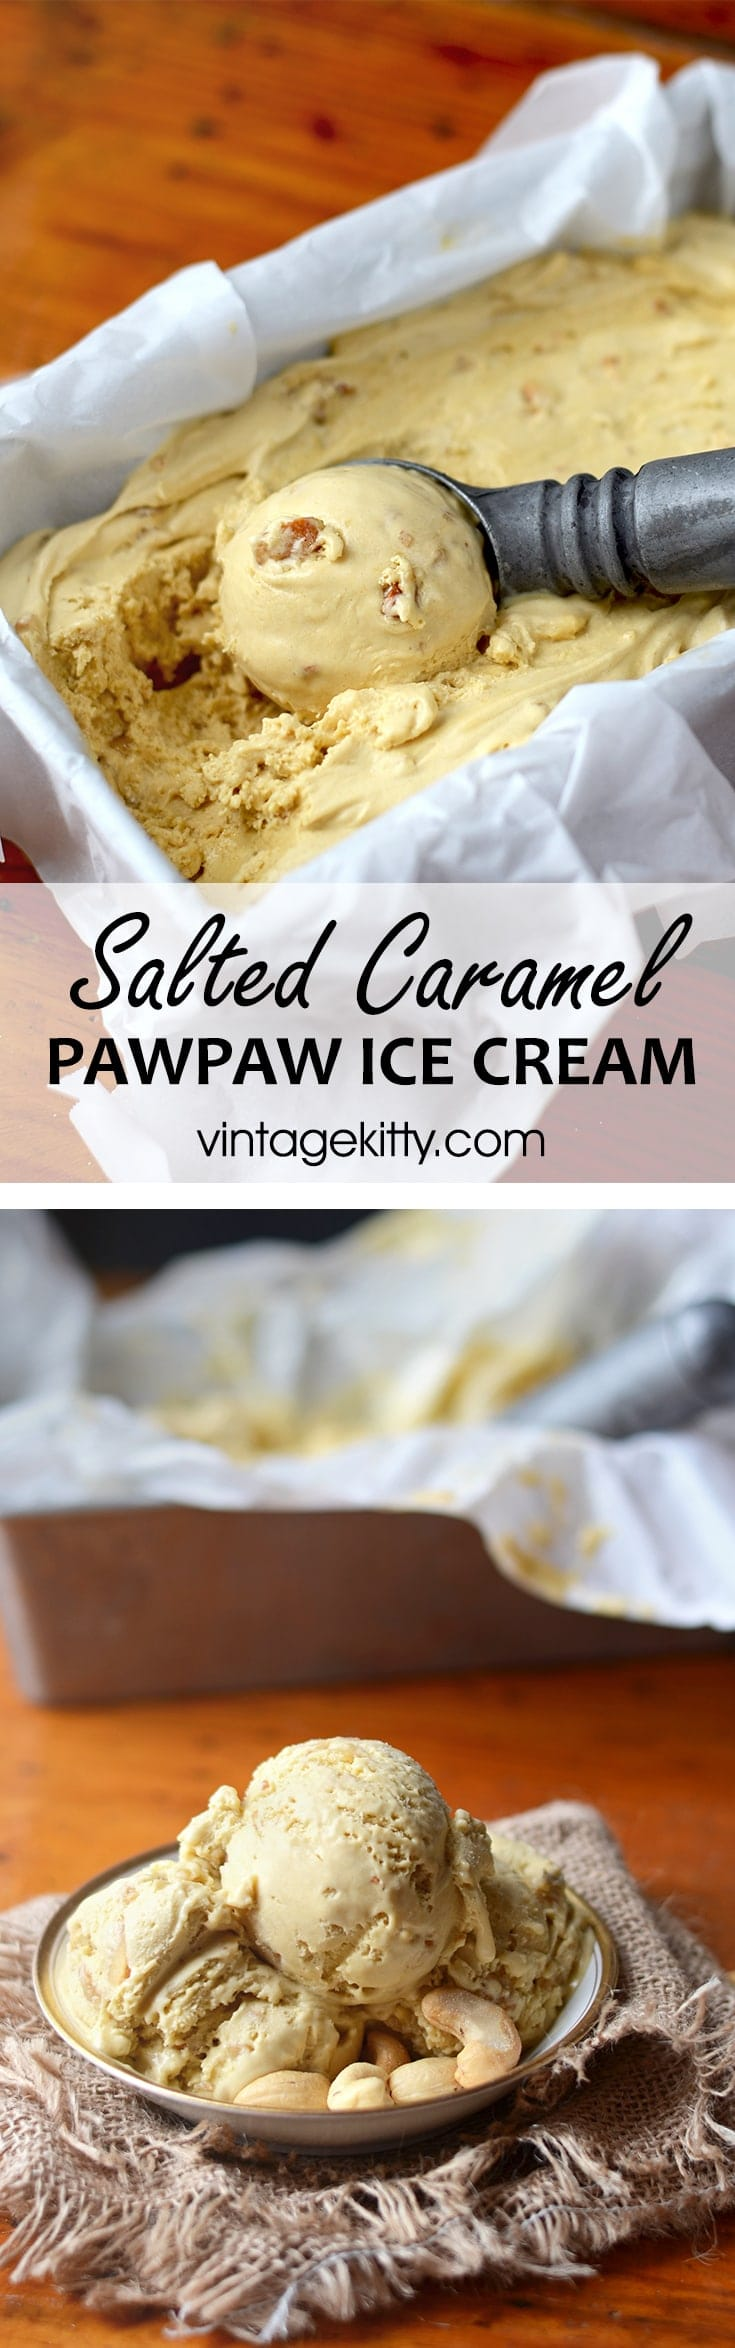 Pawpaw pin - Salted Caramel Pawpaw Ice Cream </br> with Cashew Praline Crunch